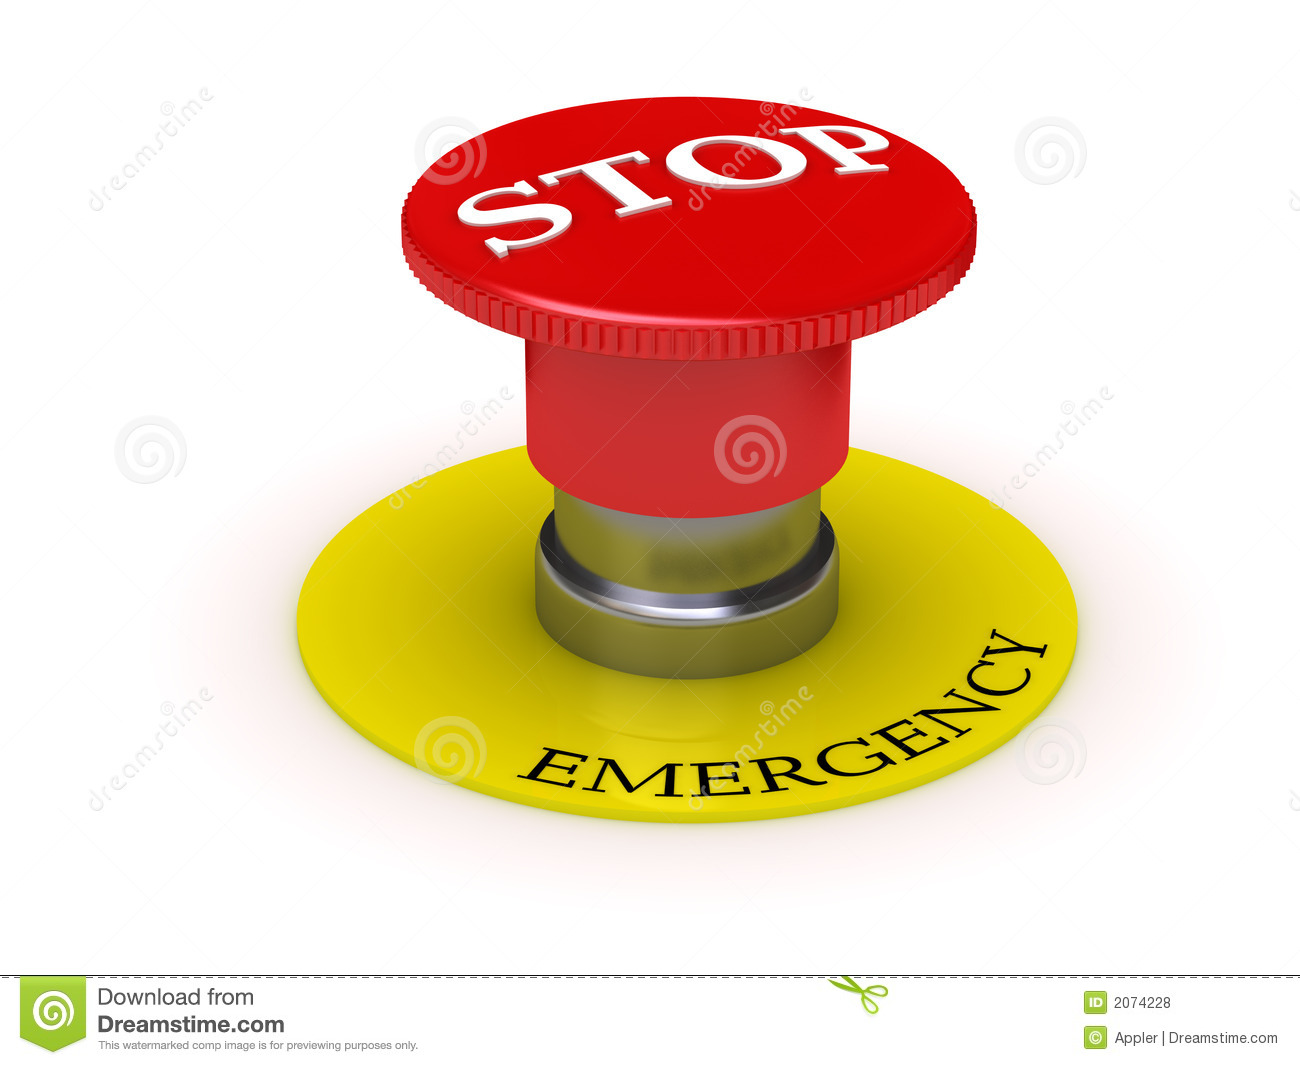 Emergency stop icon clipart emergency off - Background Button Emergency Illustration Stop